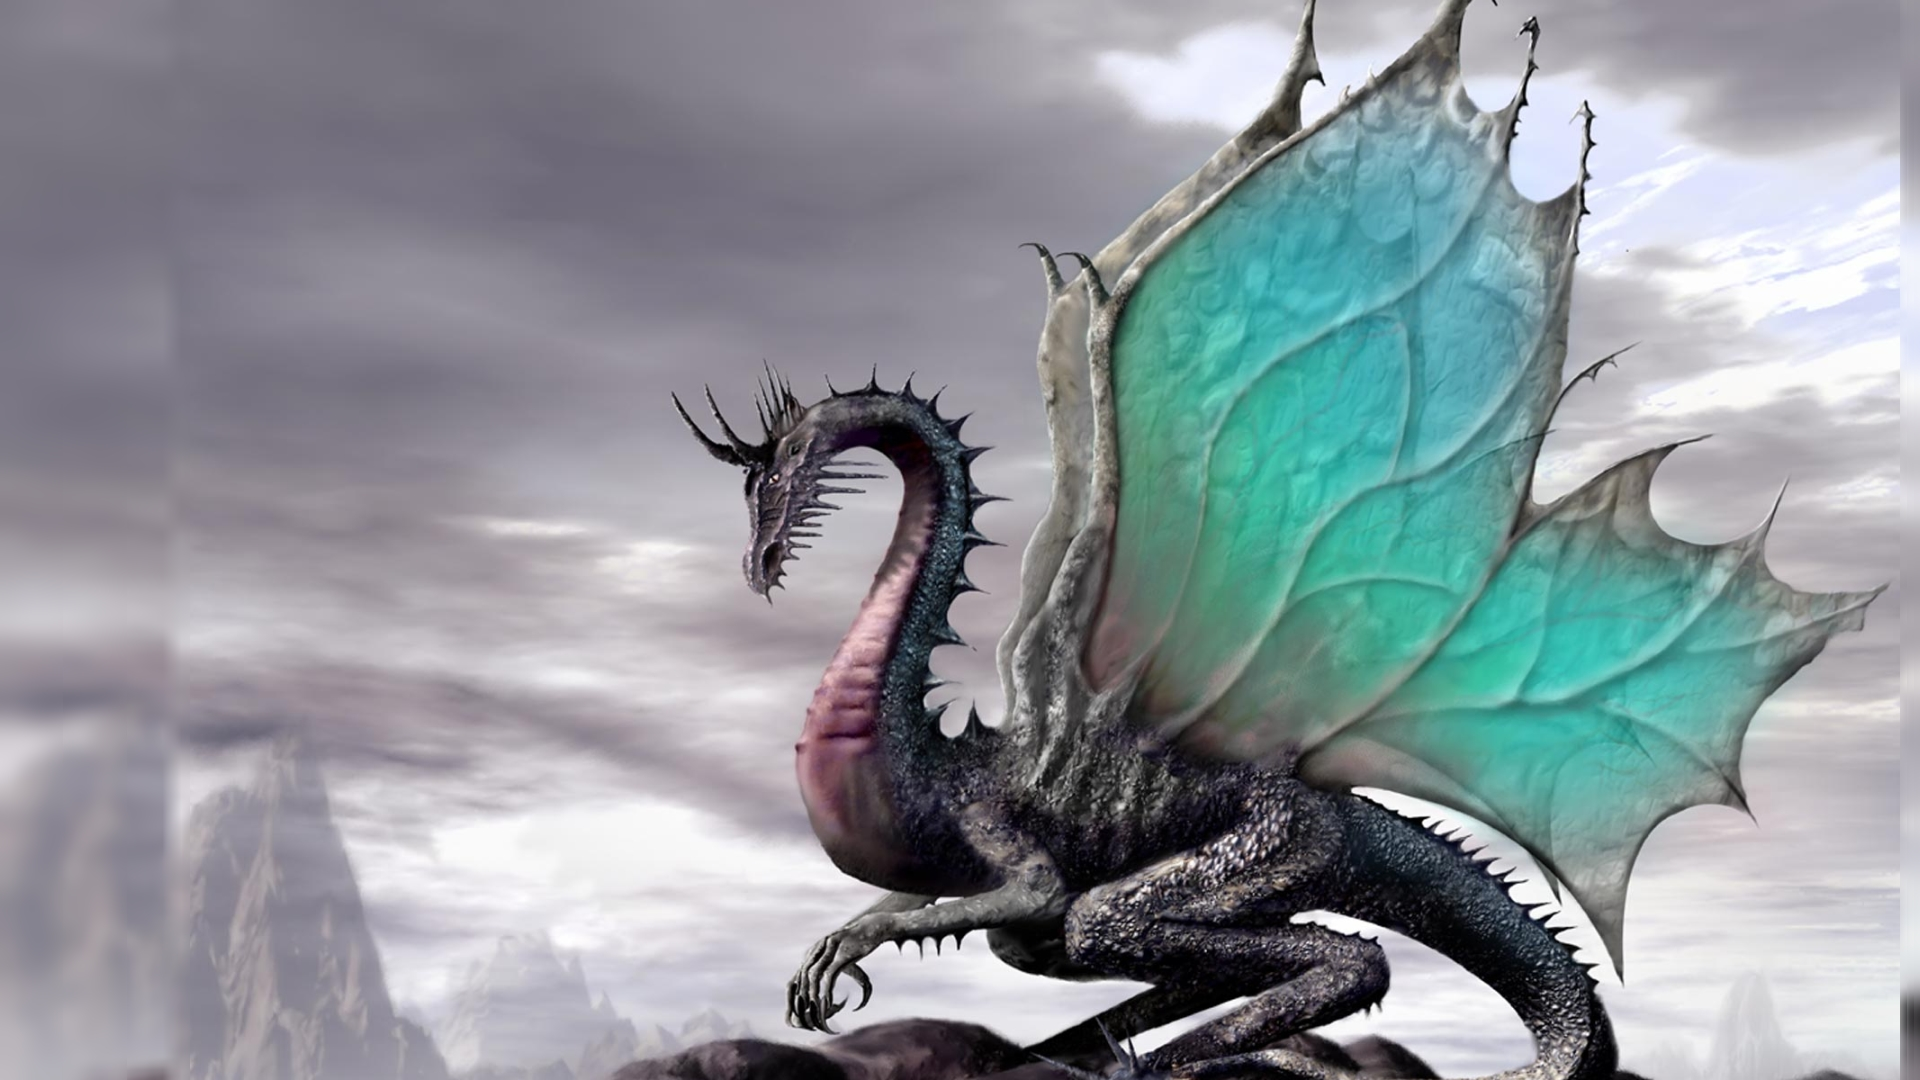 Top 50 hd dragon wallpapers images backgrounds desktop - Dragon wallpaper hd for pc ...